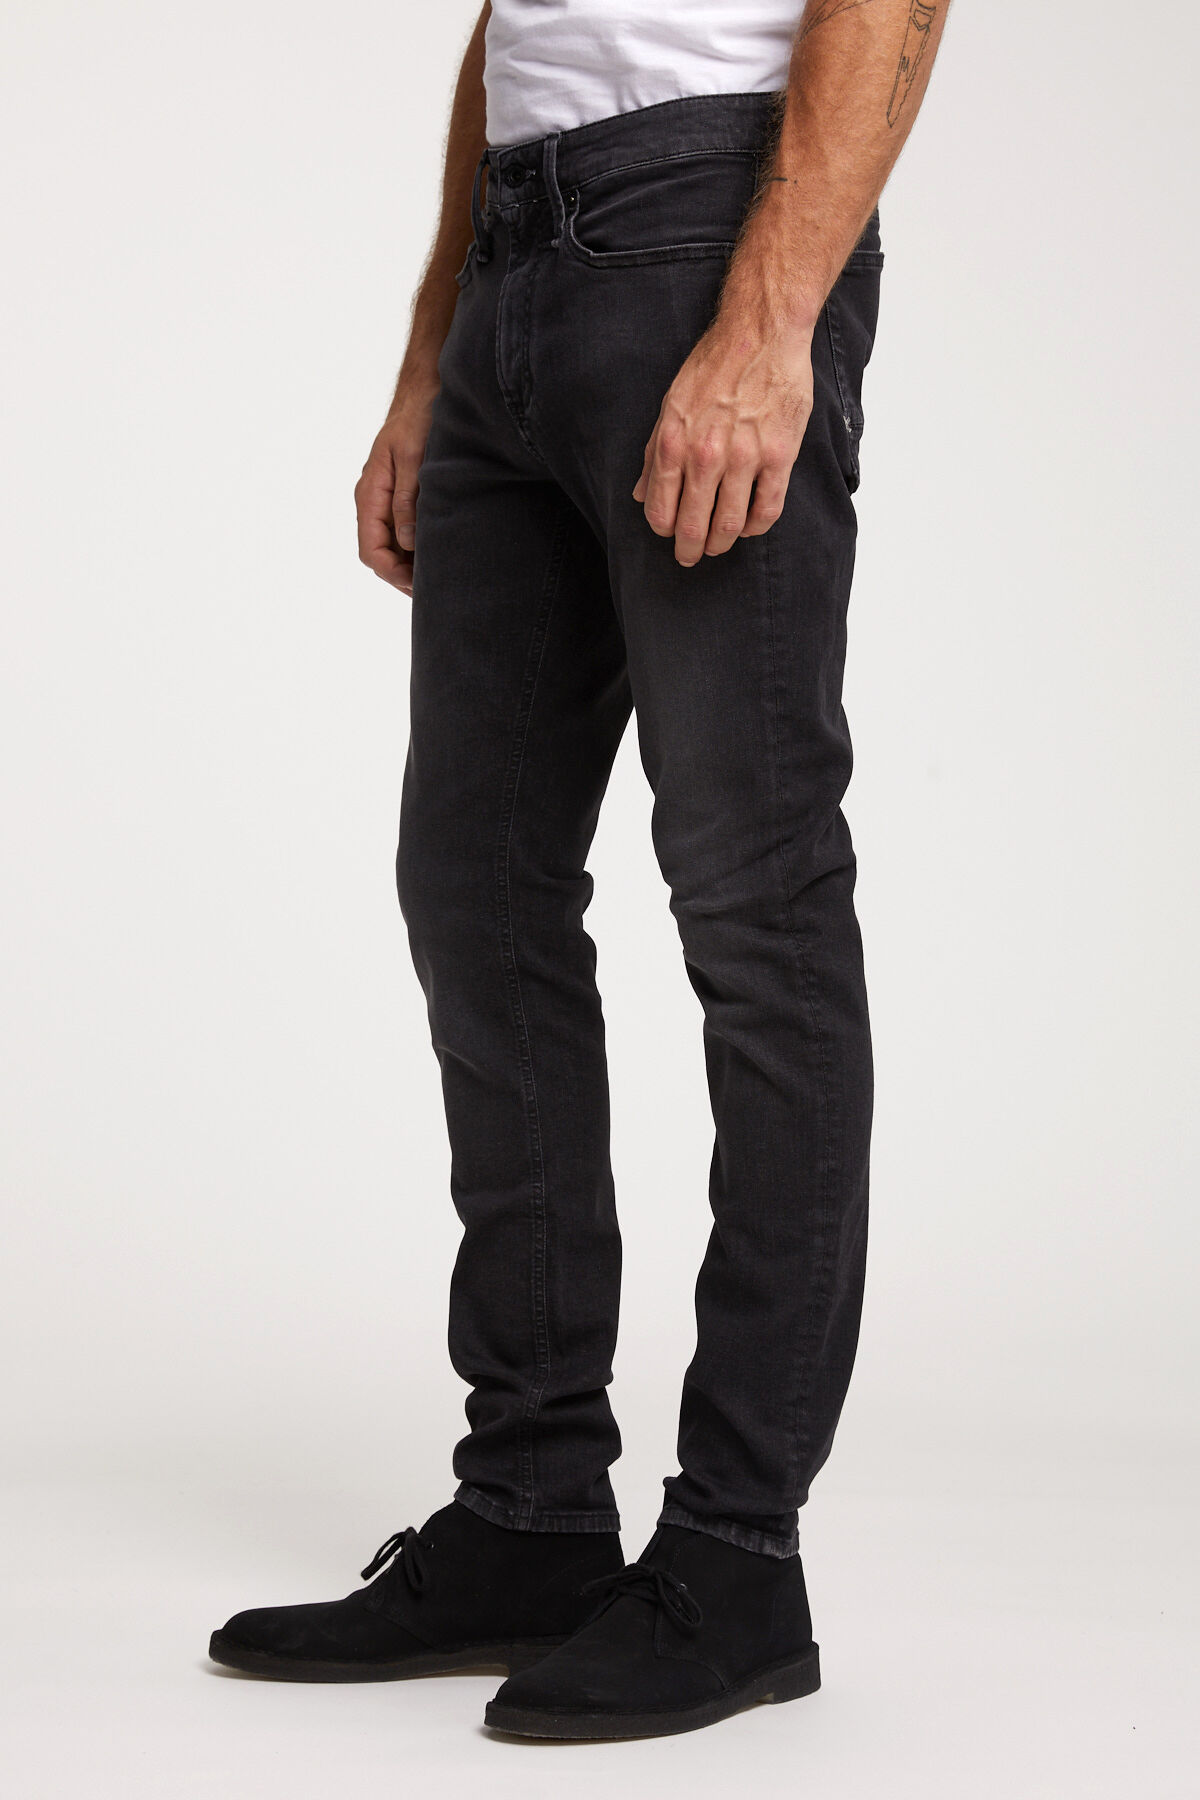 BOLT ZIP Rinsed Black Denim - Skinny Fit